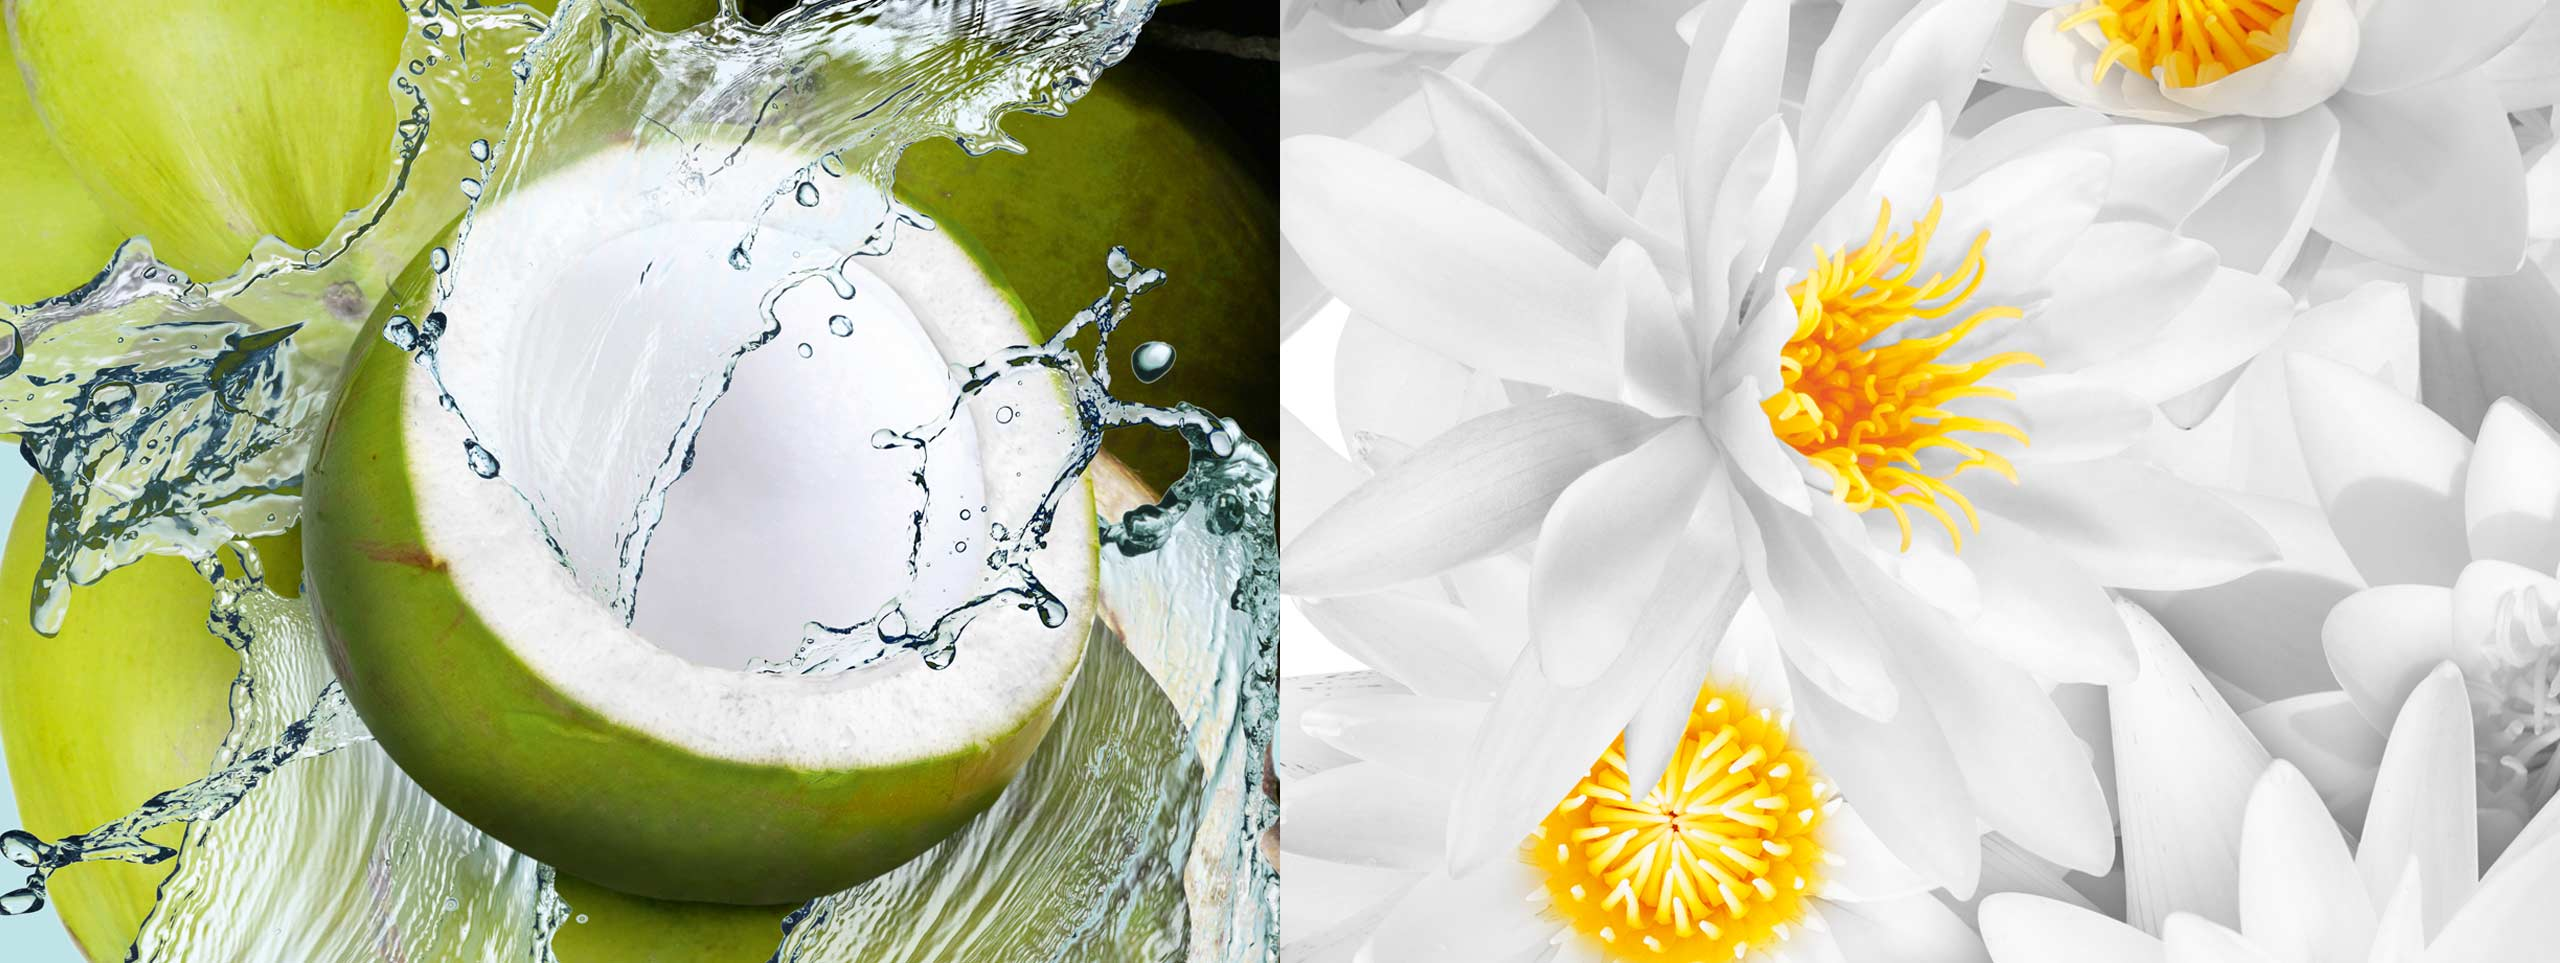 schauma_ru_nature_moments_coconutwater_2560x963